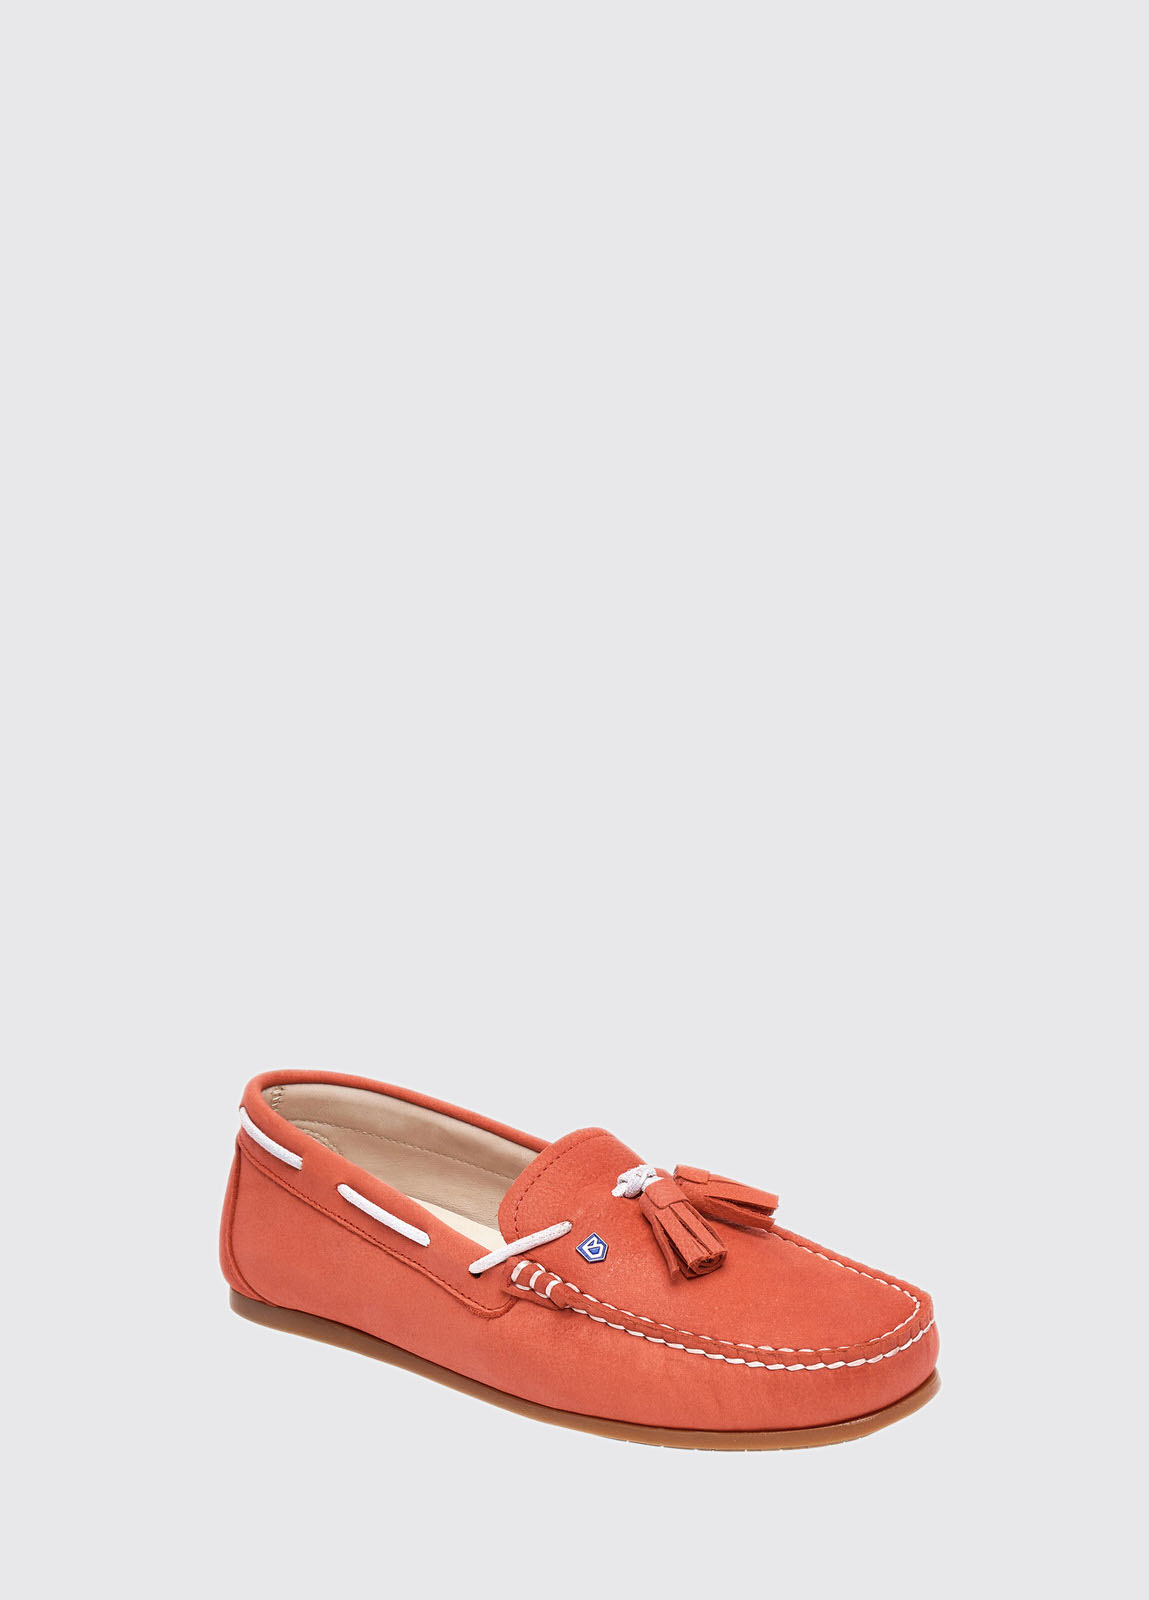 Jamaica Loafer - Coral